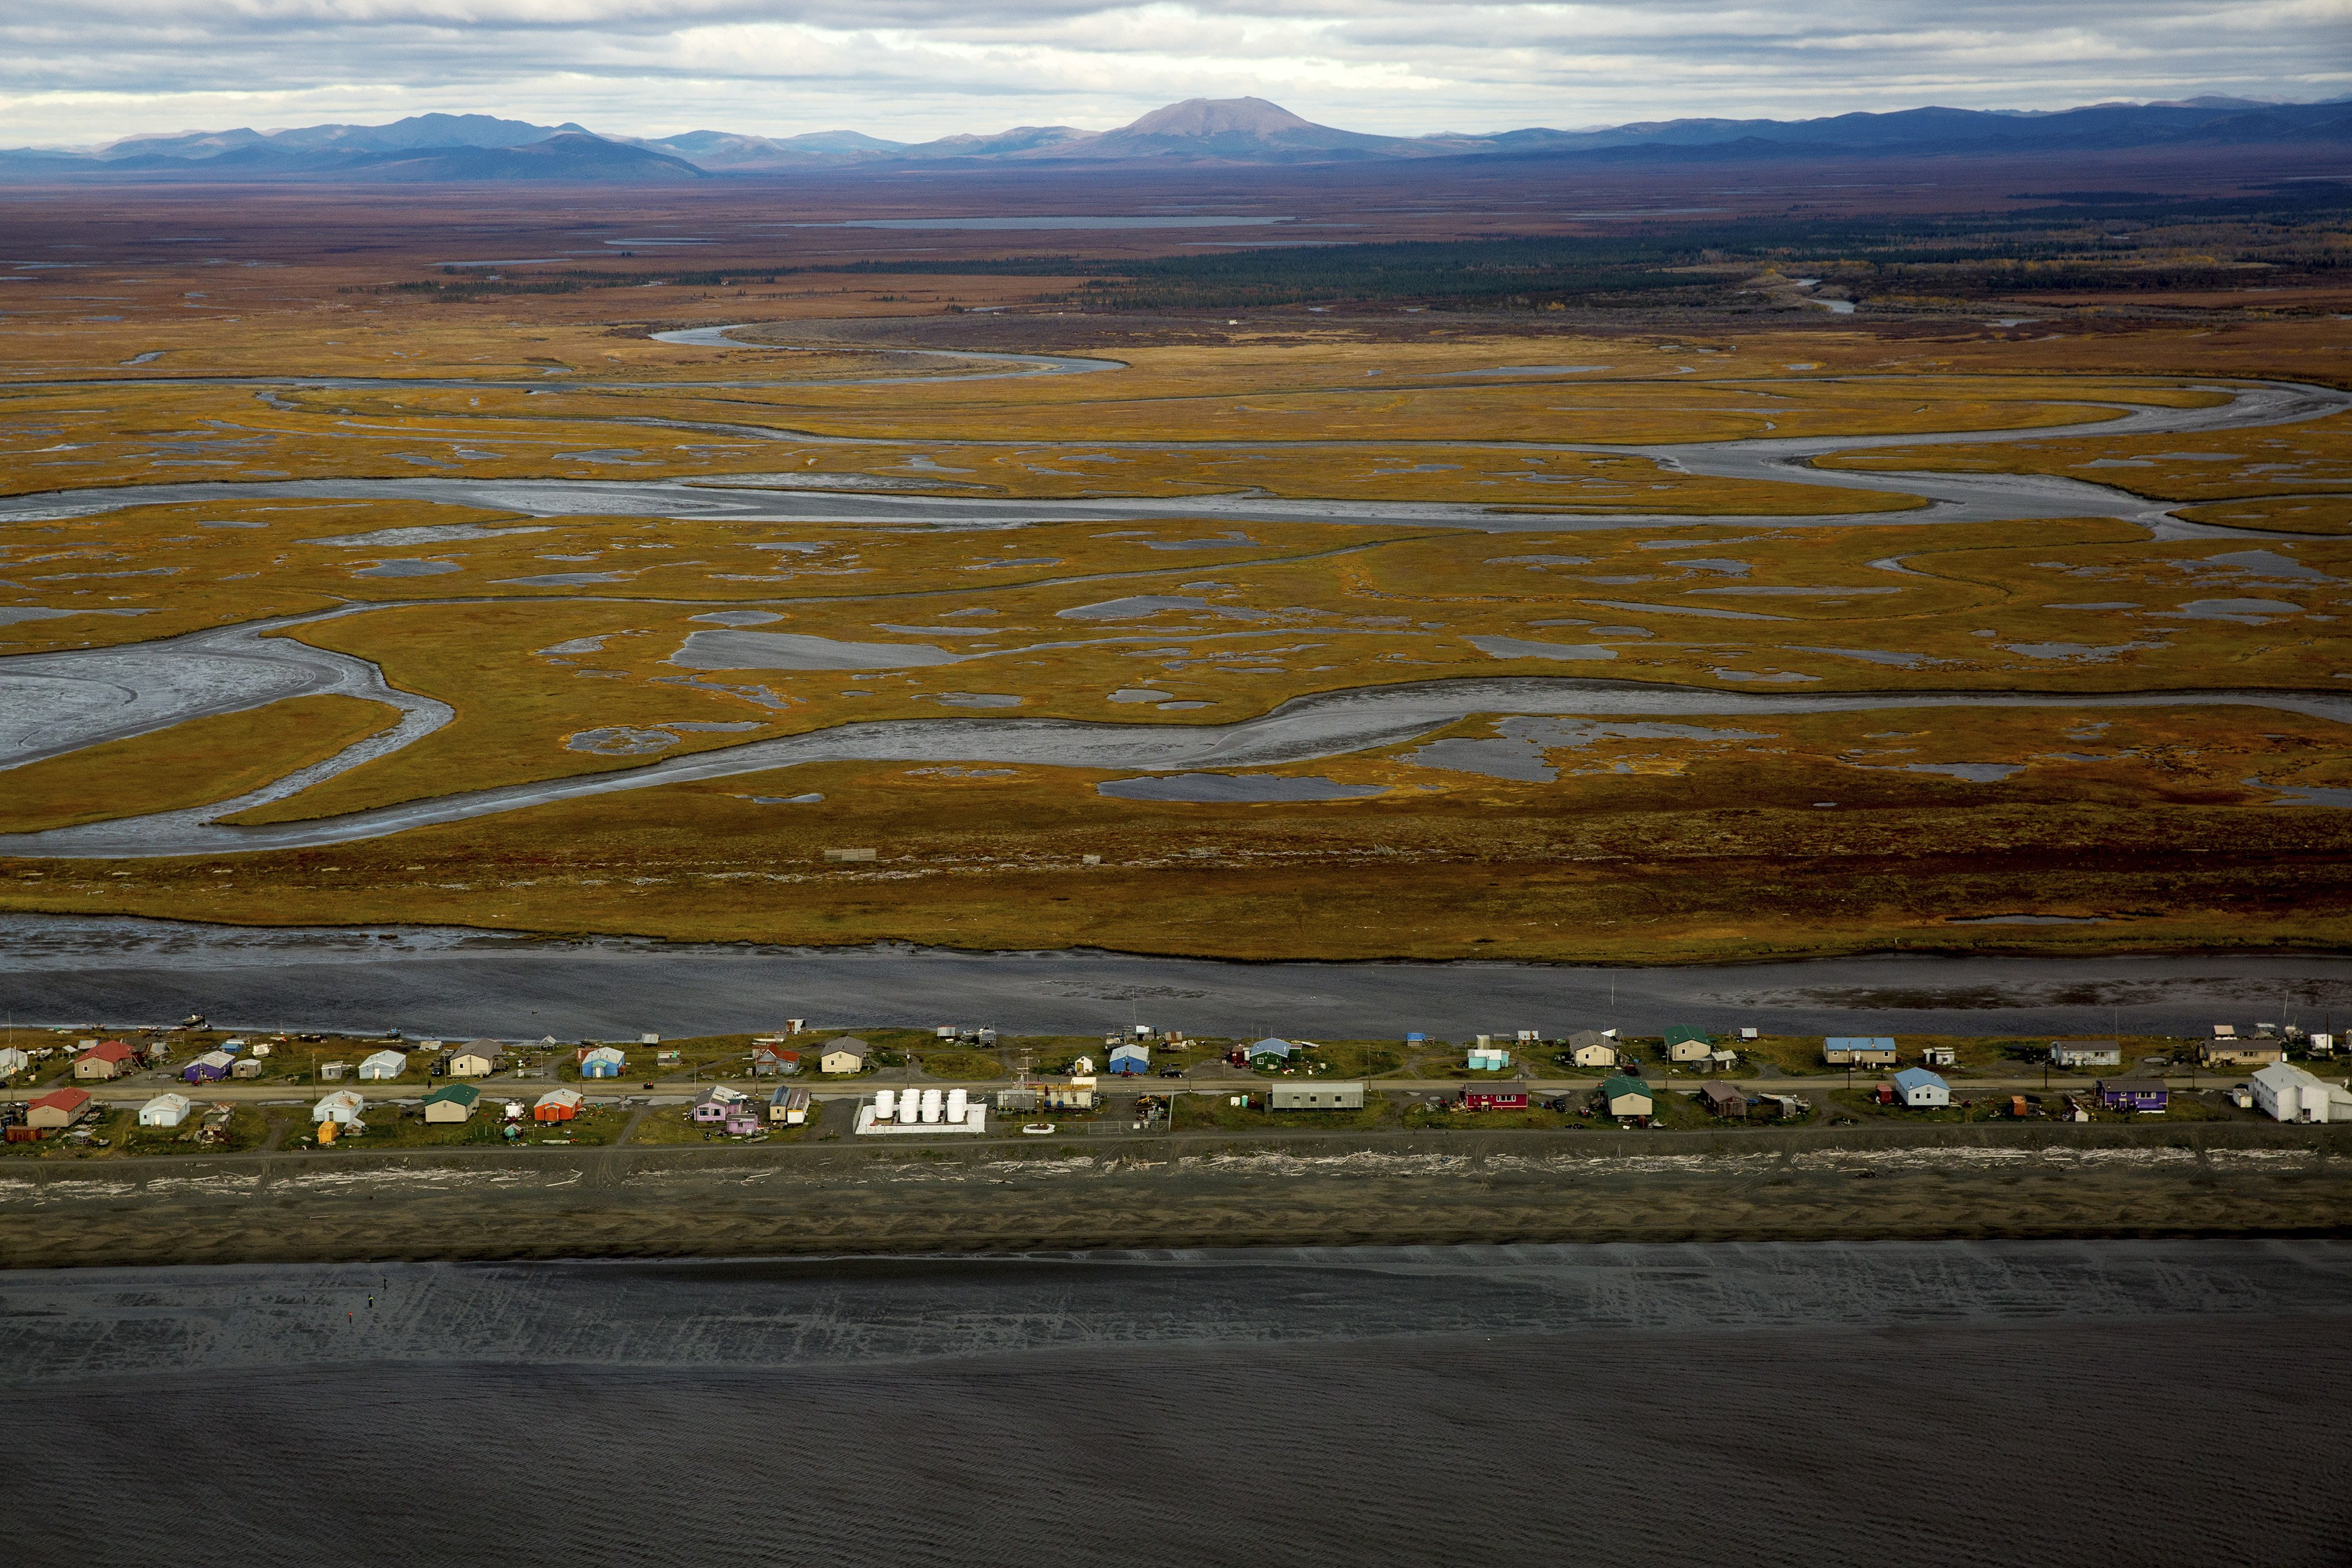 Outmigration of women from Alaska villages linked to social problems